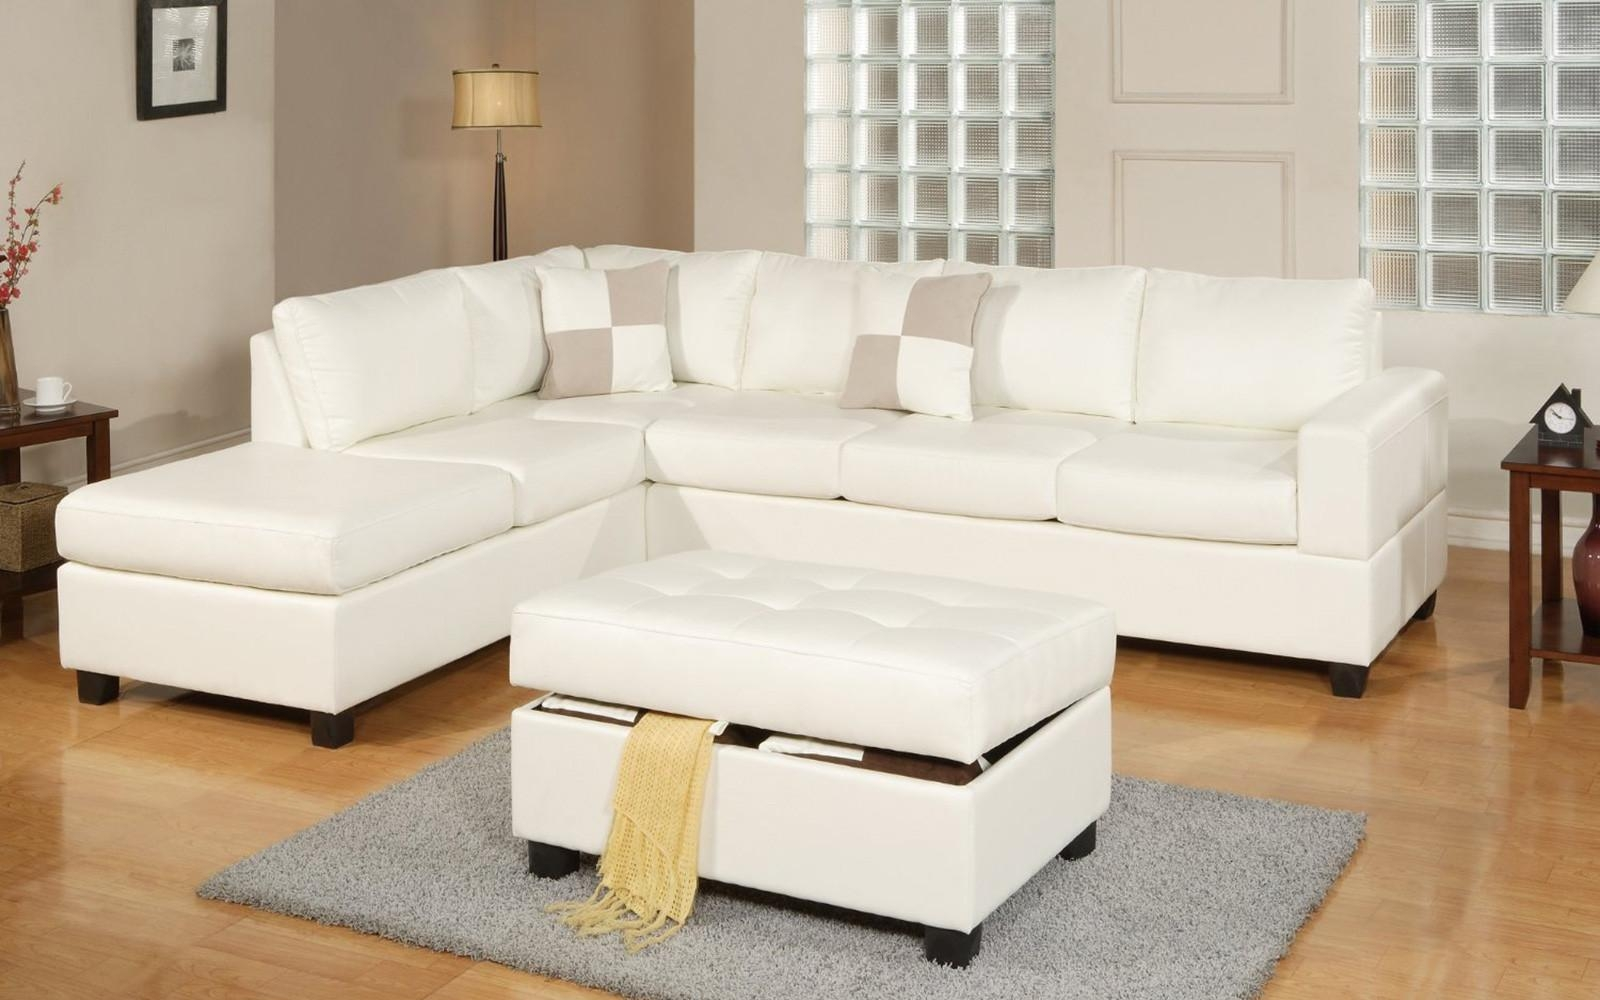 3 Piece Modern Reversible Tufted Bonded Leather Sectional Sofa In Sofa With Chaise And Ottoman (View 18 of 20)